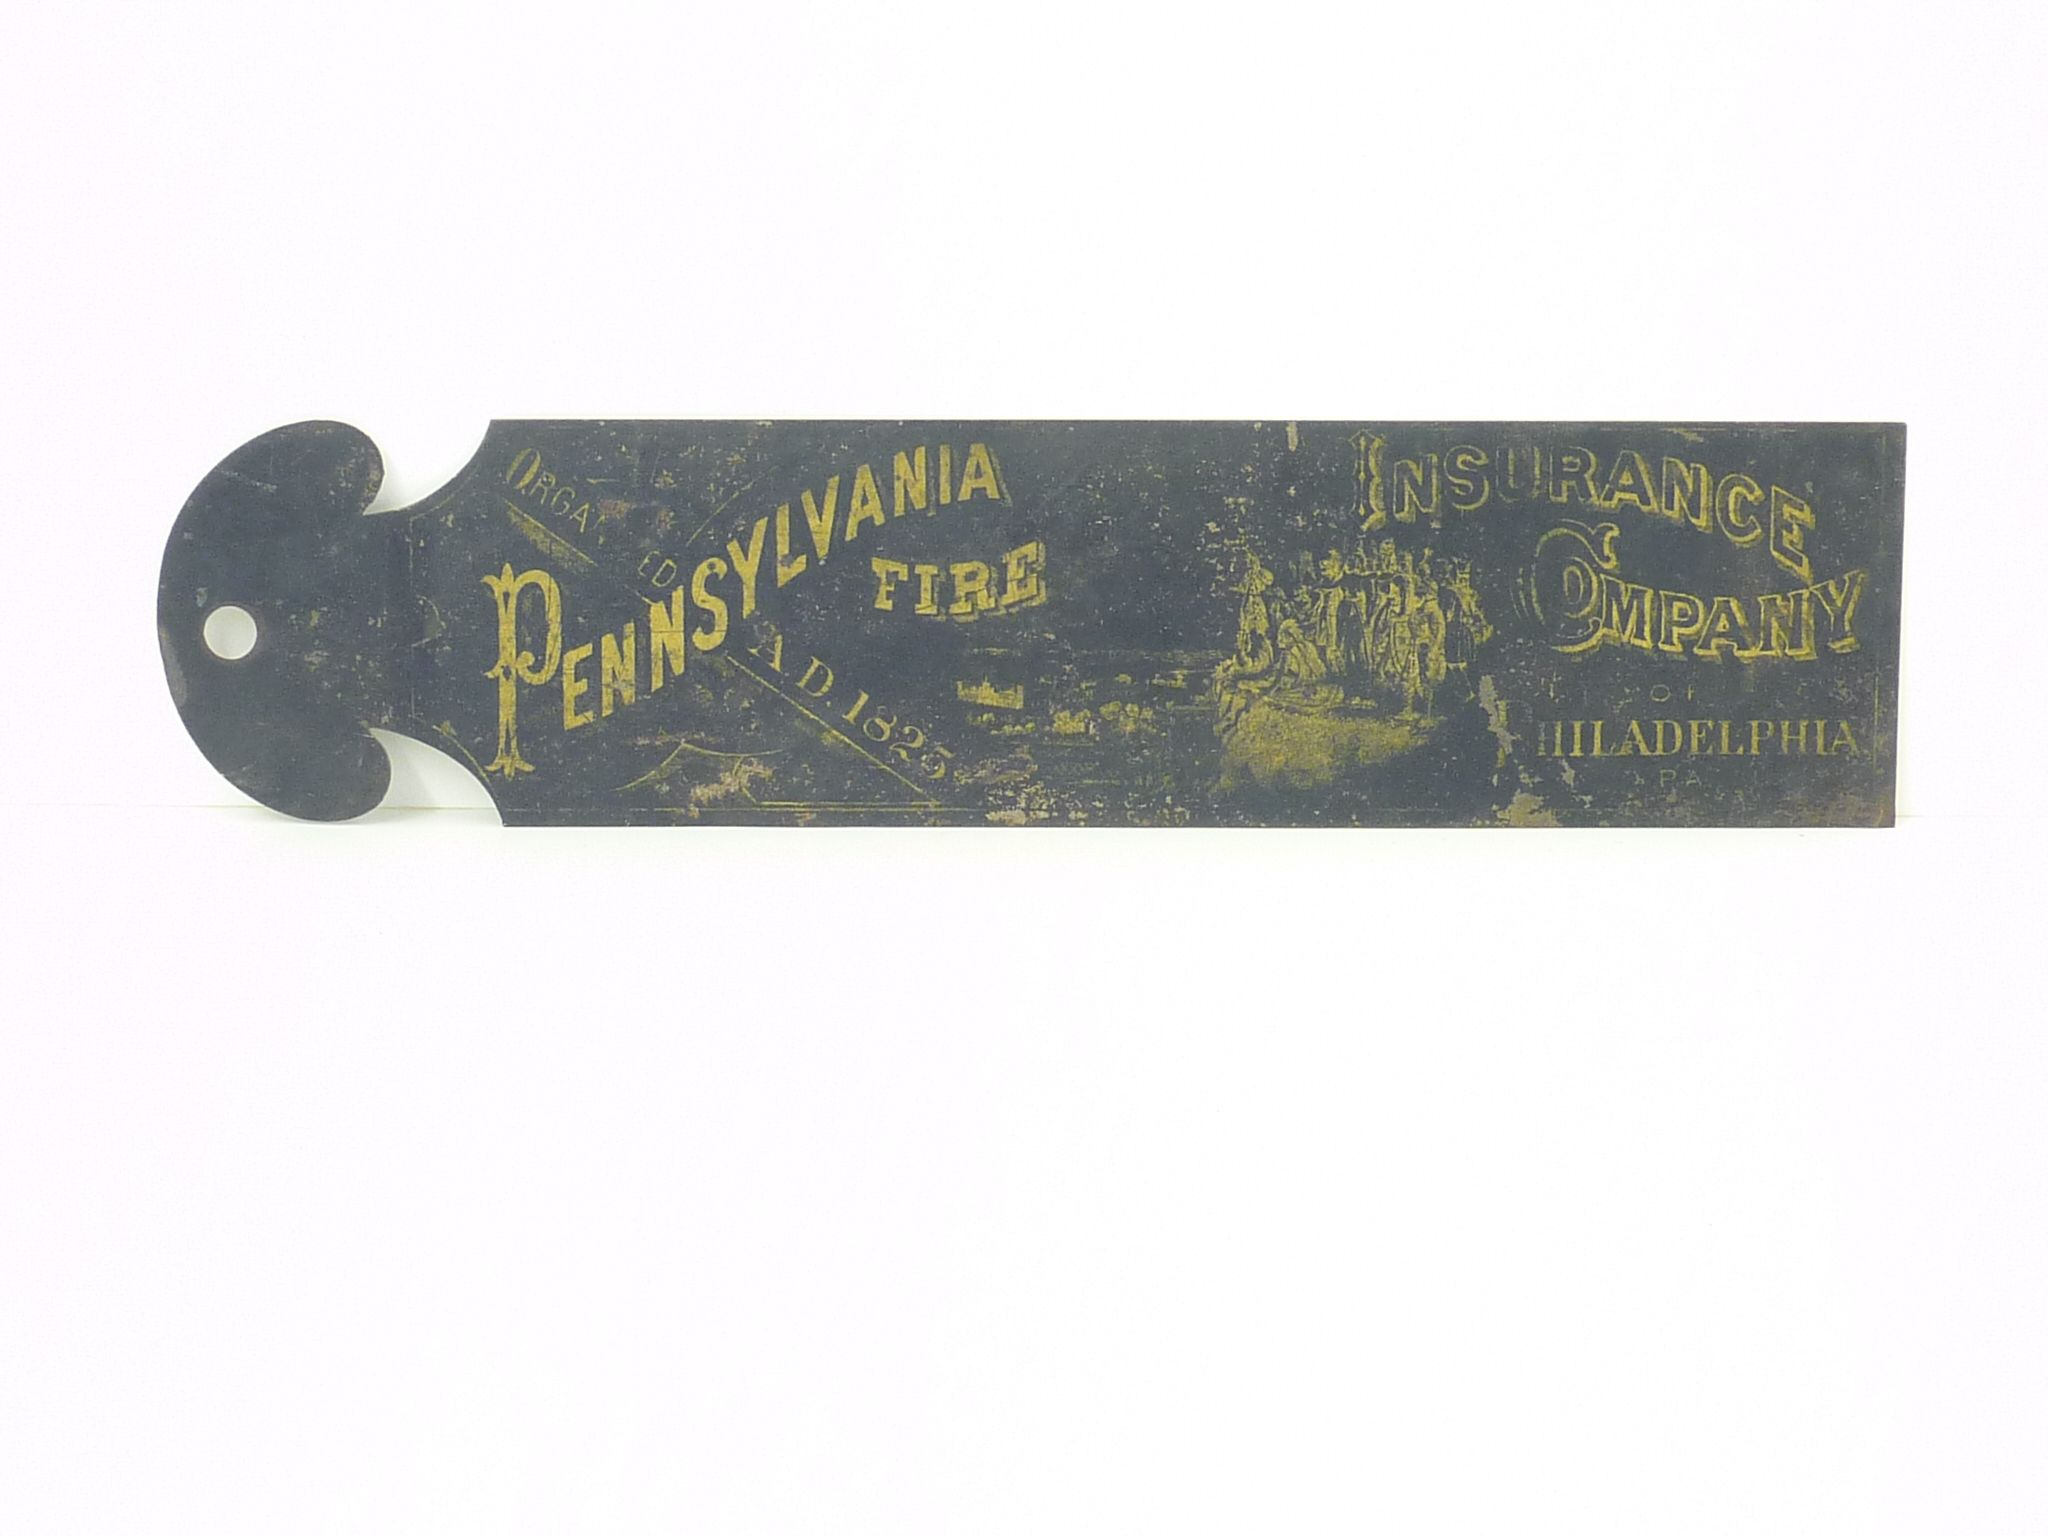 The Pennsylvania Fire Insurance Company Philadelphia